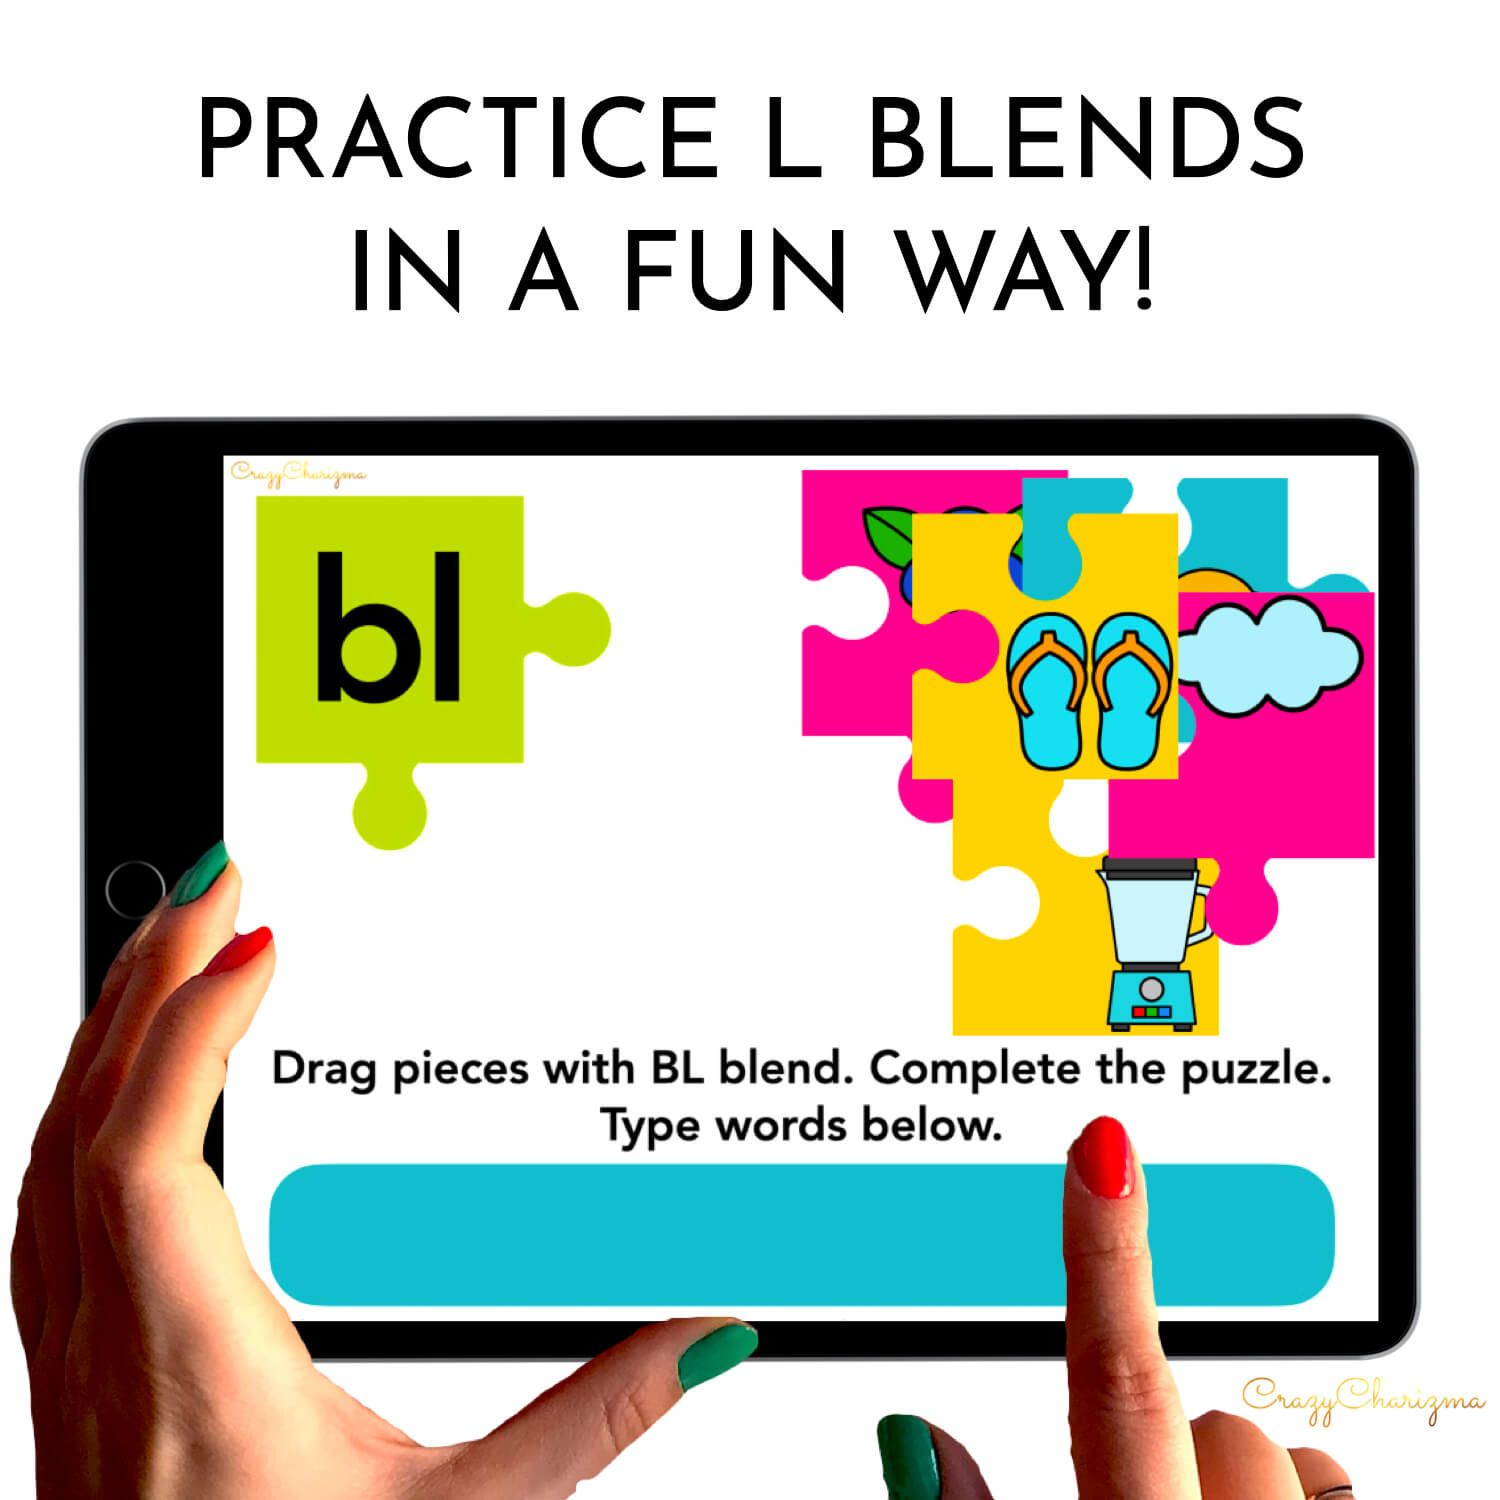 Need to practice beginning L BLENDS in a fun way? Check out these interactive puzzles for Google Classroom. Kids will match pieces of puzzles (images to the blend) and type the words.